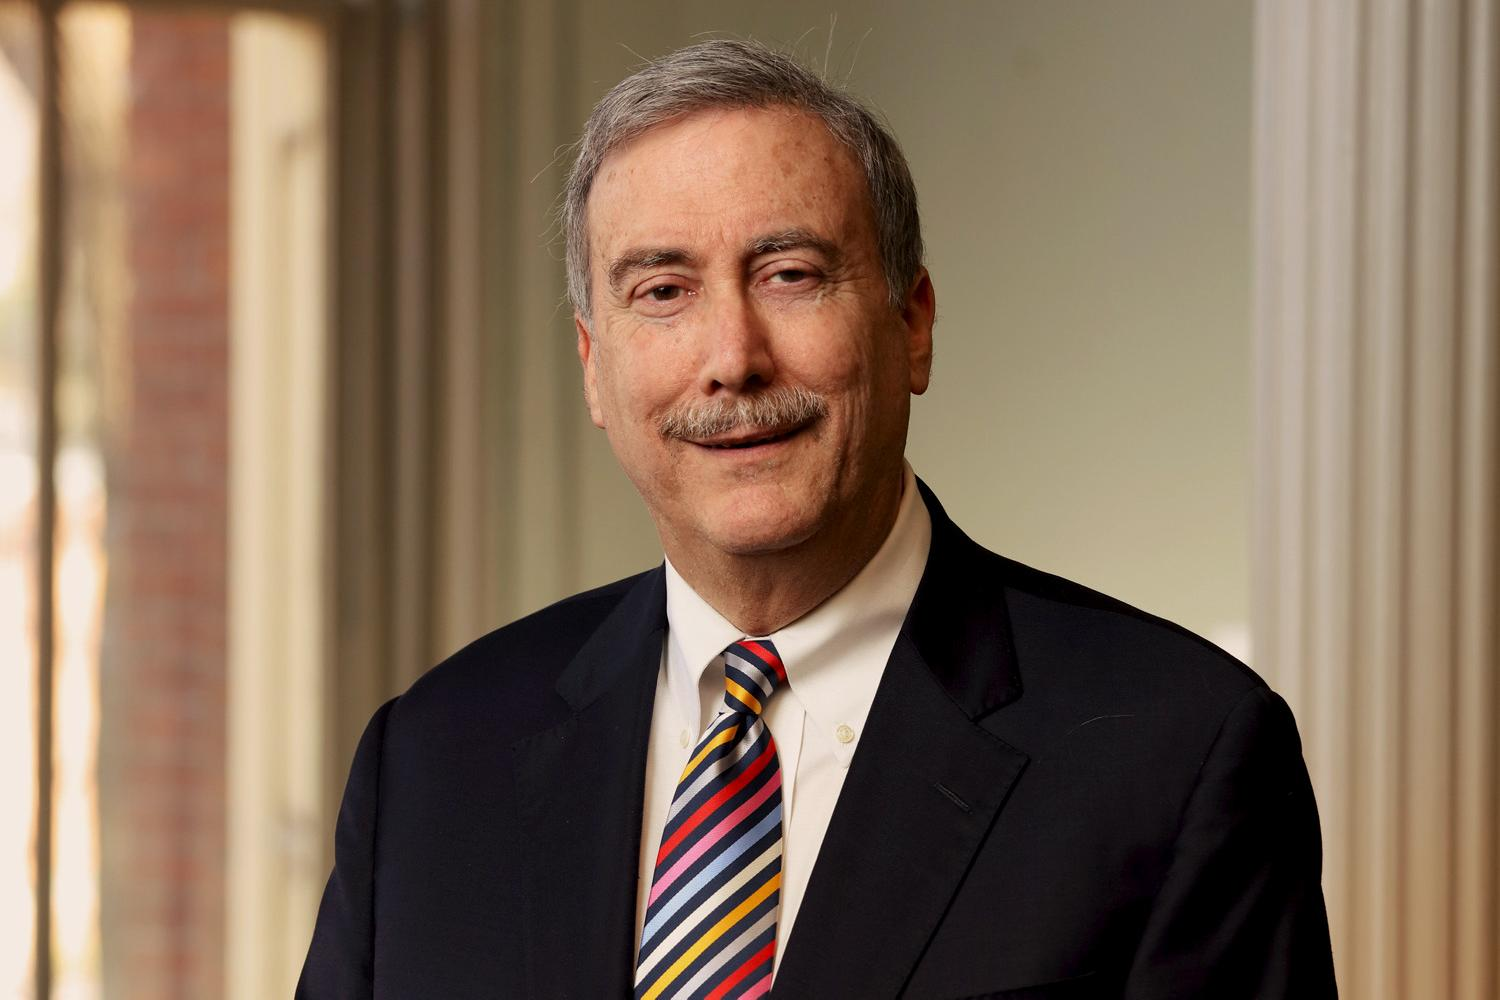 Renowned political analyst and politics professor Larry Sabato is the founding director of UVA's Center for Politics.